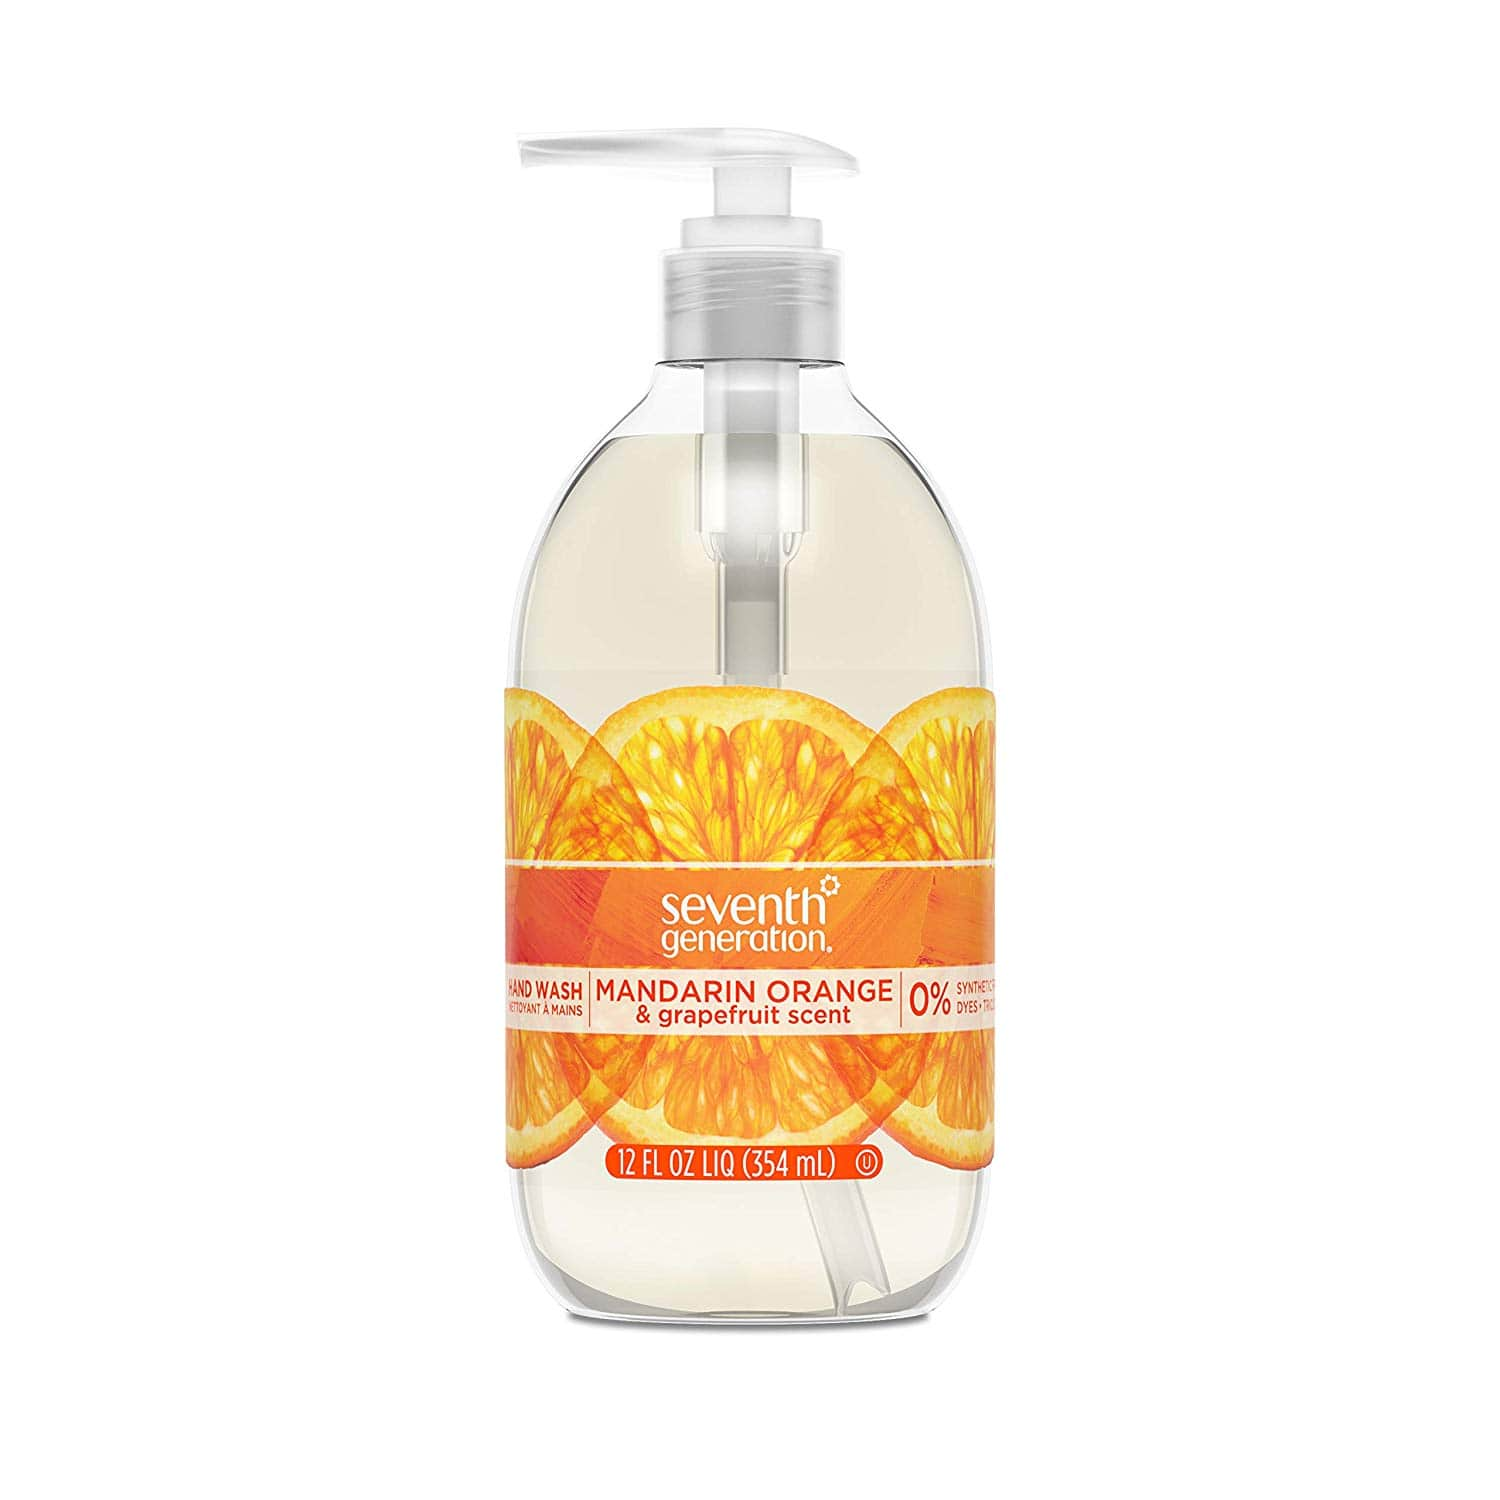 8-Count Seventh Generation Hand Wash Soap (Mandarin Orange & Grapefruit) of $13.15 5% or $10.75 15% AC's w/s&s (YMMV)